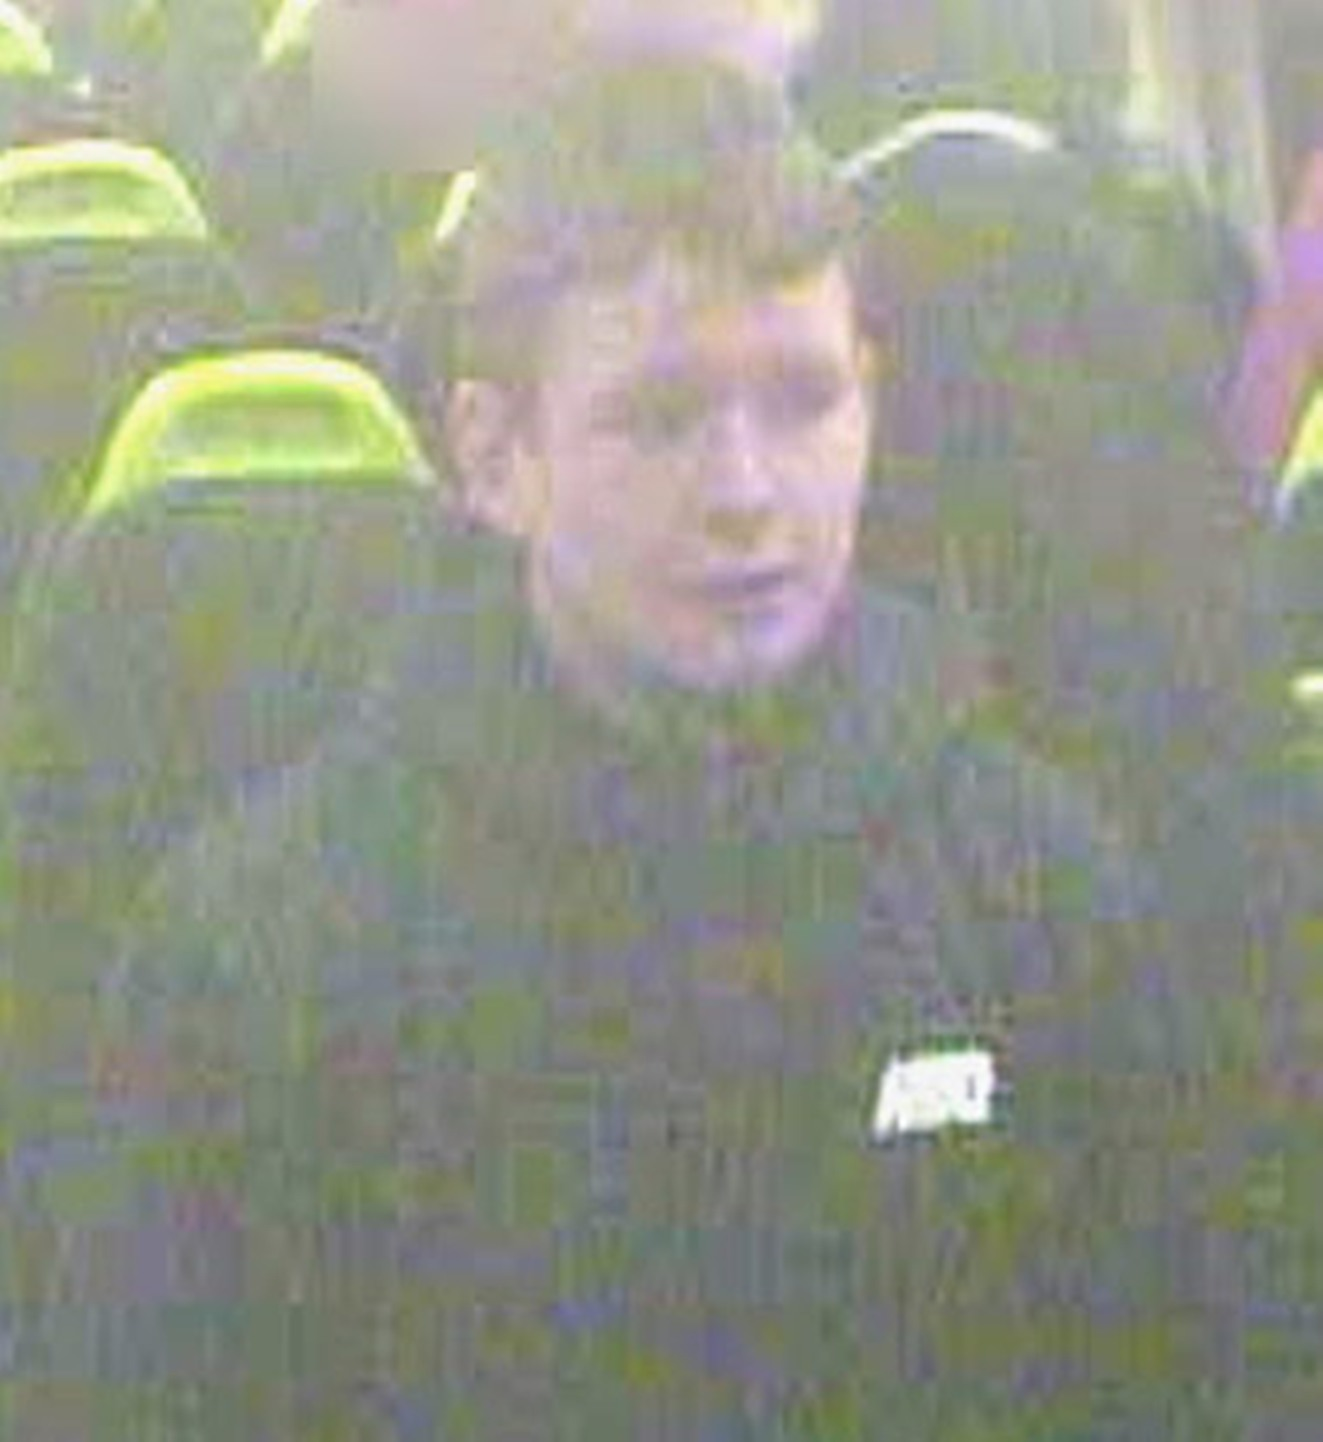 Man stole phone after touching woman on train